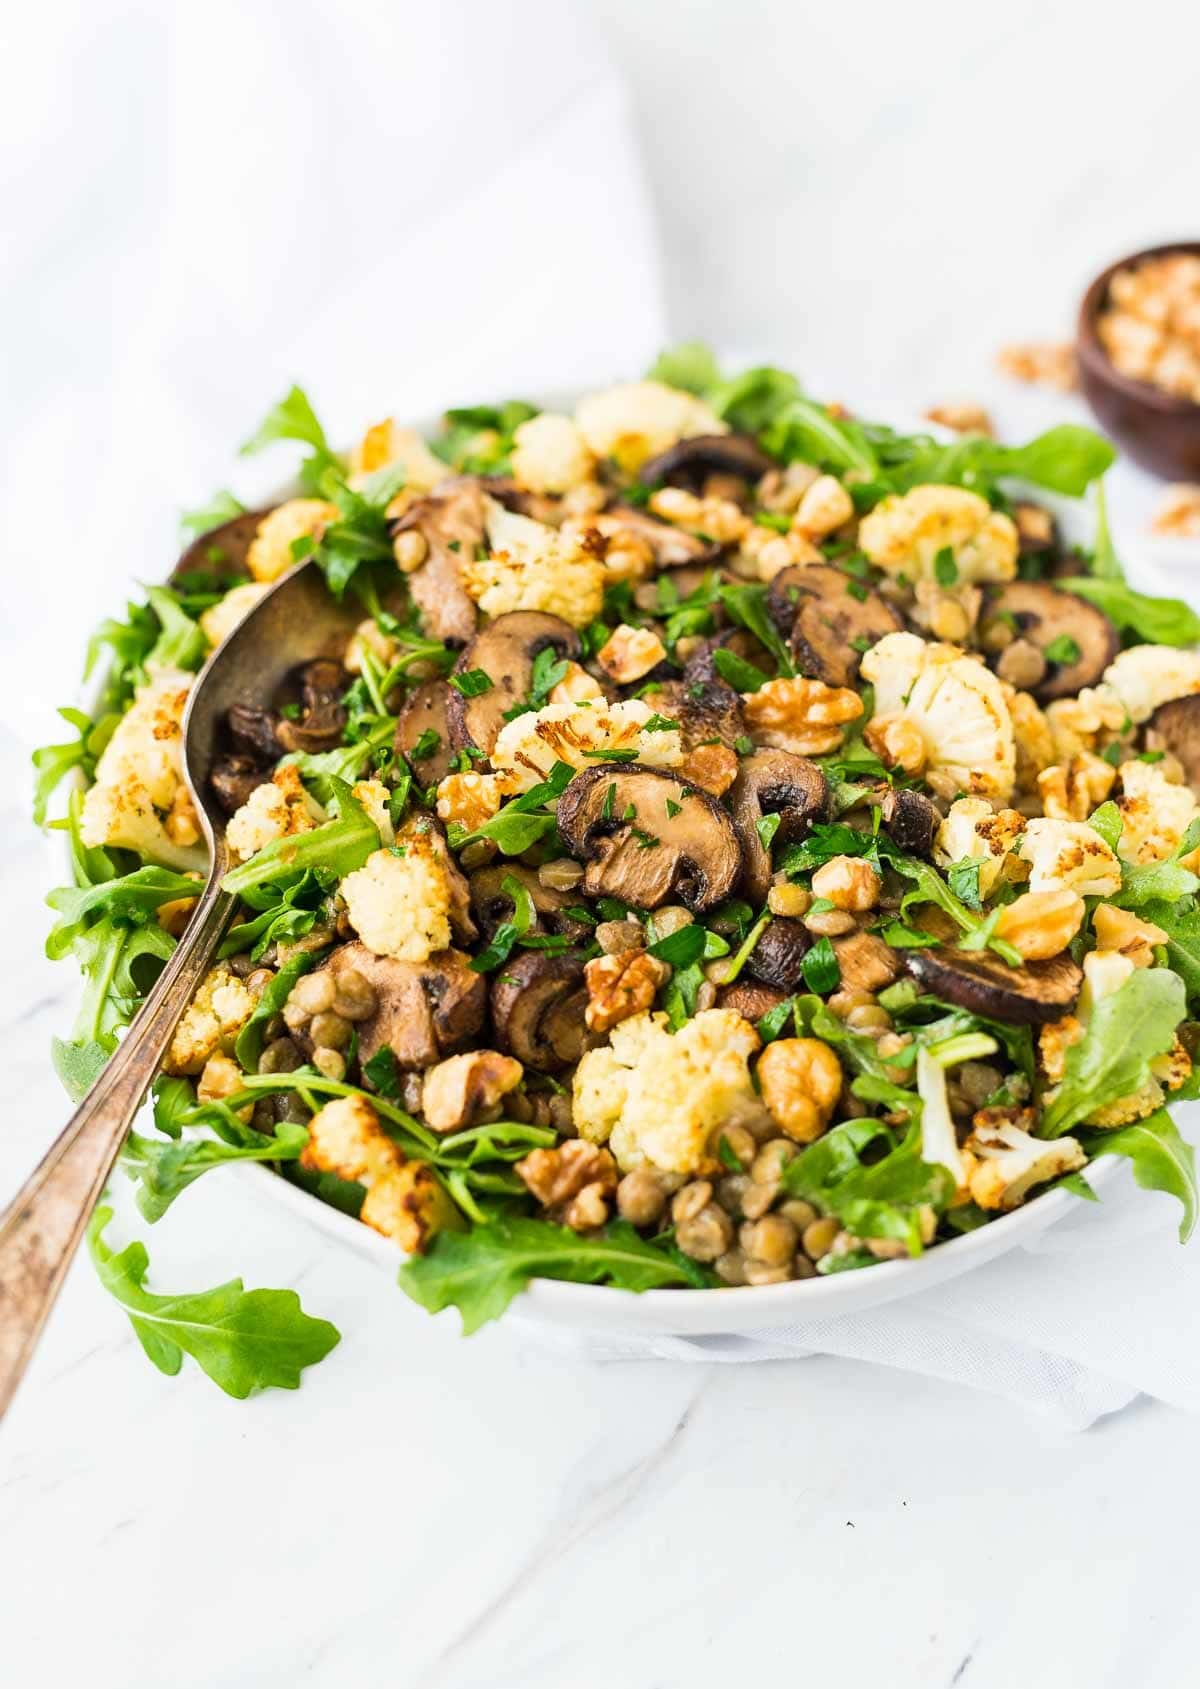 Lentil Salad with Roasted Cauliflower and Mushrooms. A healthy main dish salad with SO much flavor. Serve warm or cold. {vegan, gluten free} Recipe at wellplated.com | @wellplated